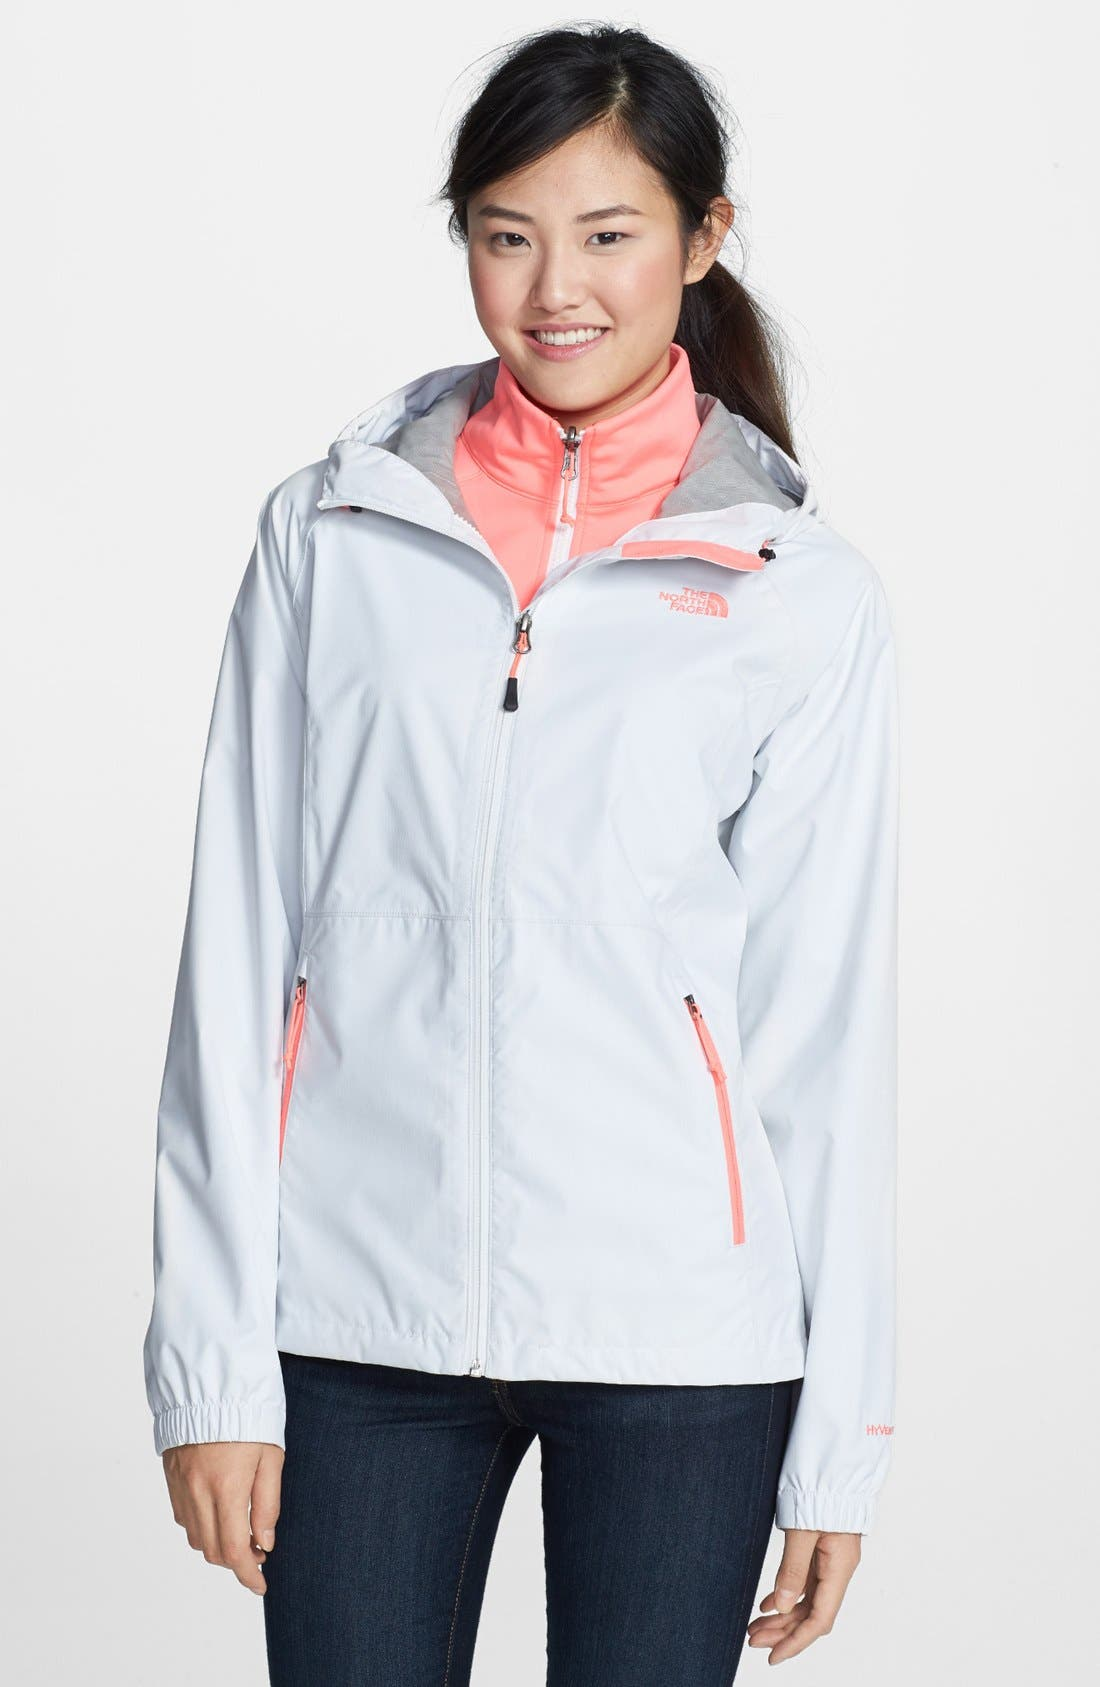 Alternate Image 1 Selected - The North Face 'Momentum' TriClimate® 3-in-1 Jacket